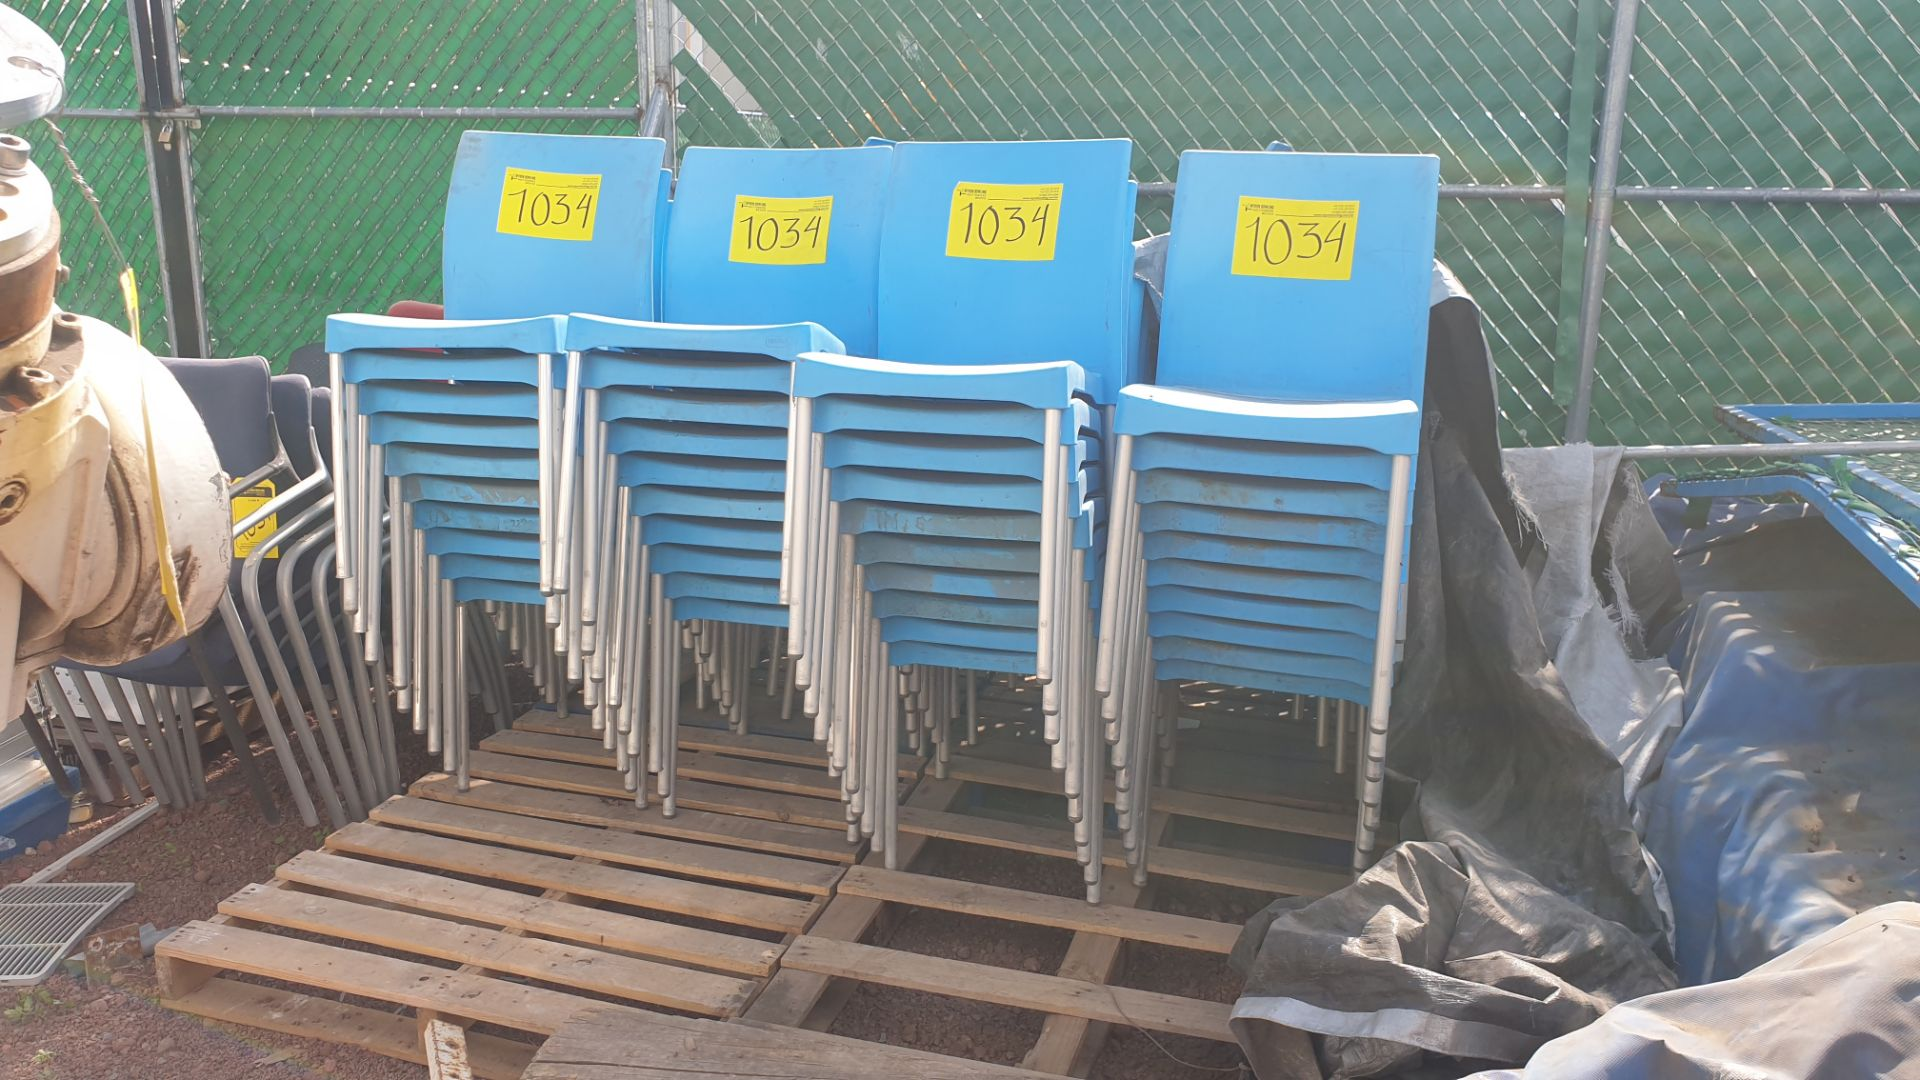 Lot of 40 blue plastic chairs, includes 7 metal office chairs with upholstered back and seat - Image 3 of 6